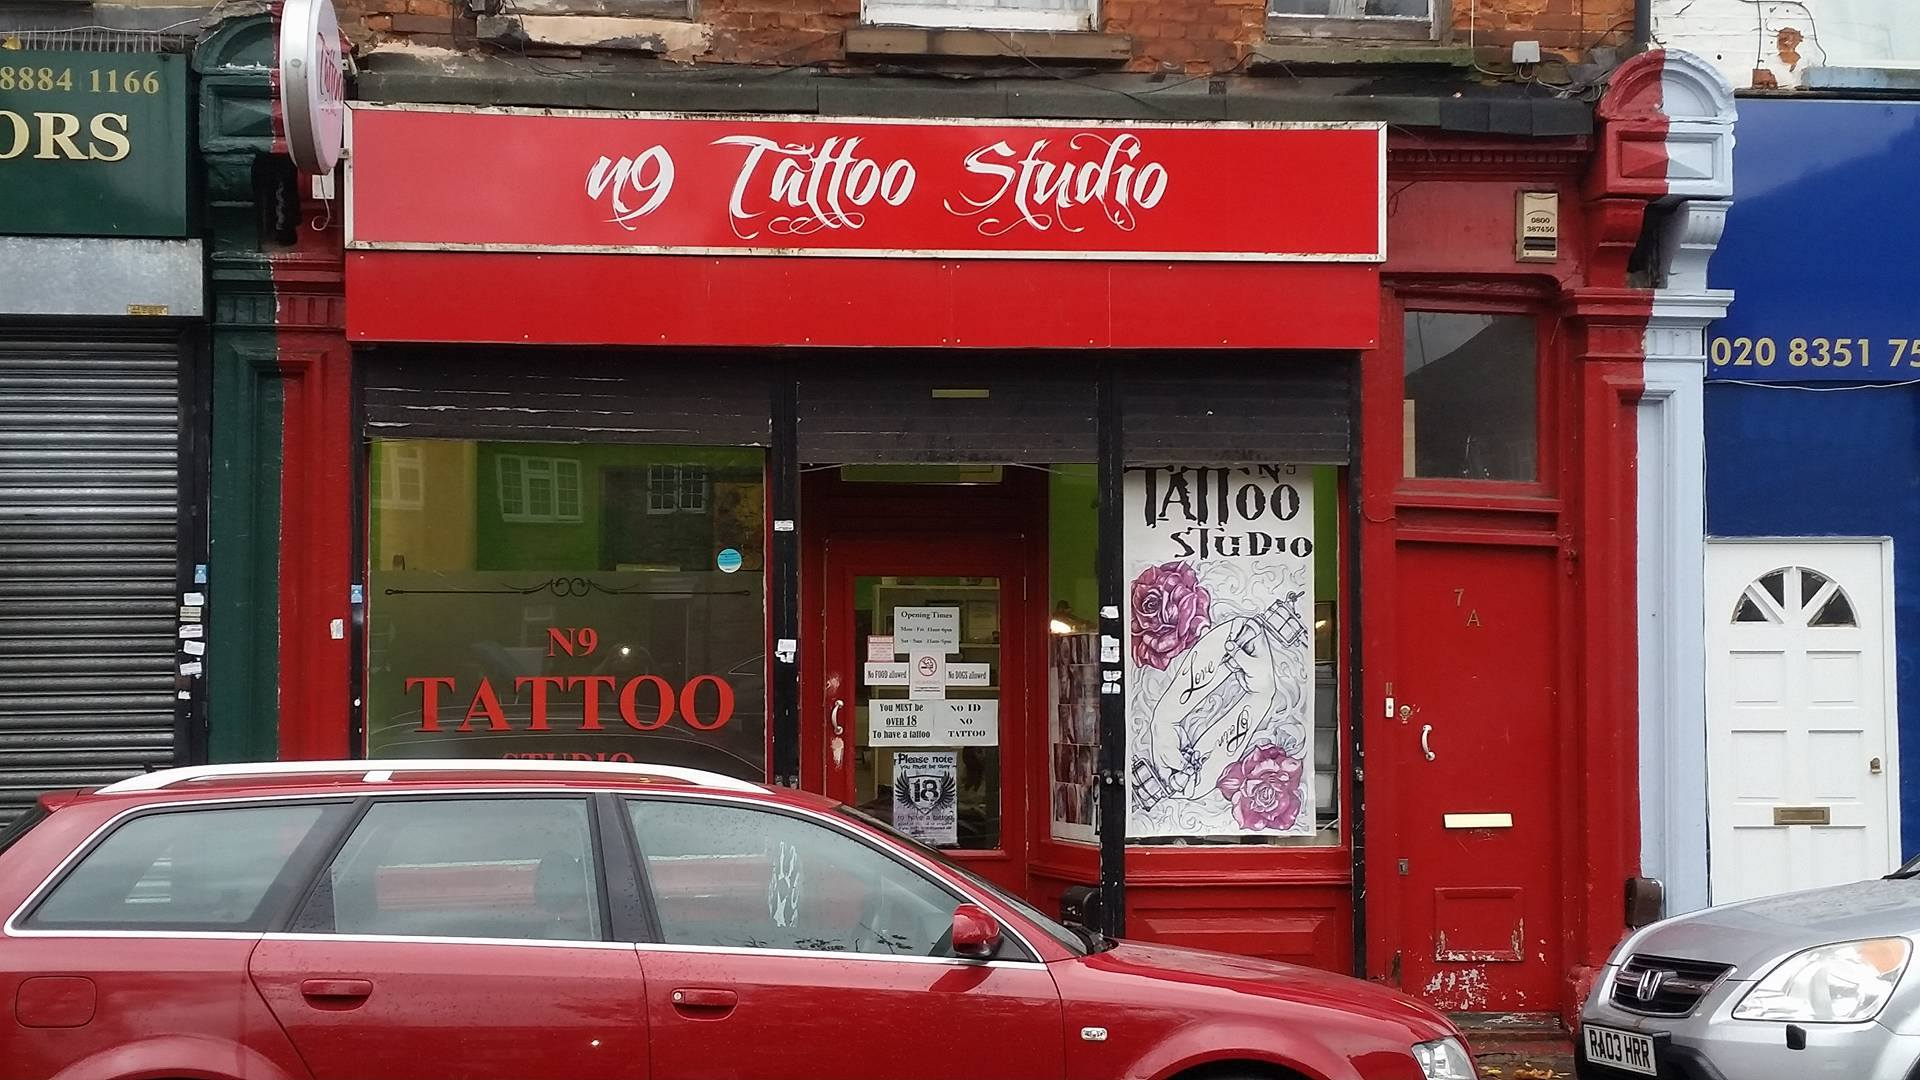 North london tattoo wood green tattoo shop for Tattoo shops in london